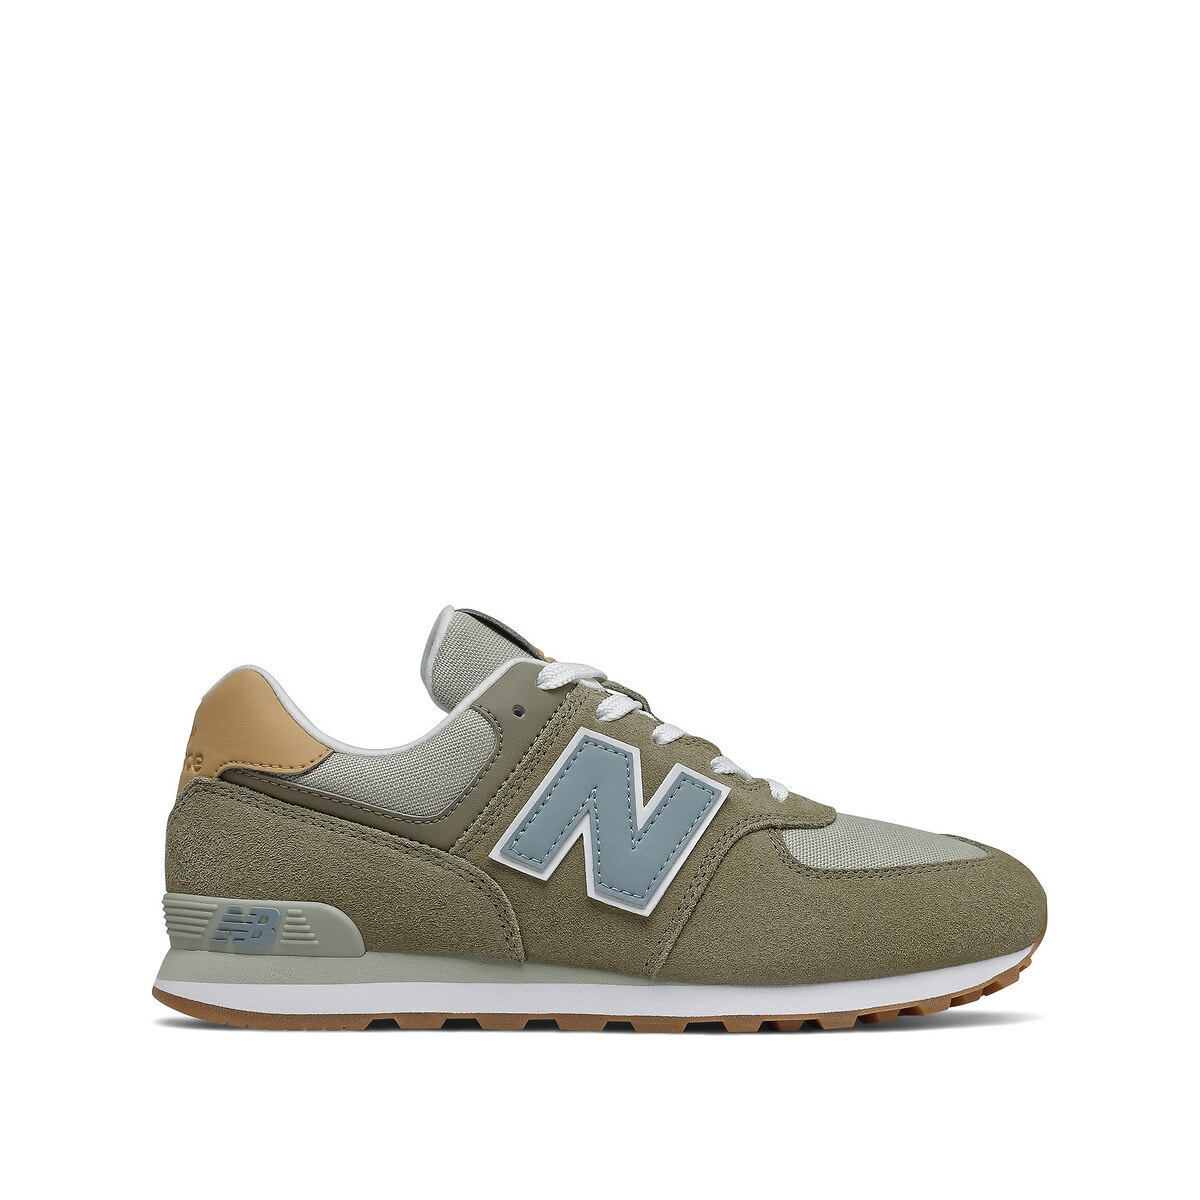 Chaussures New Balance fille | La Redoute